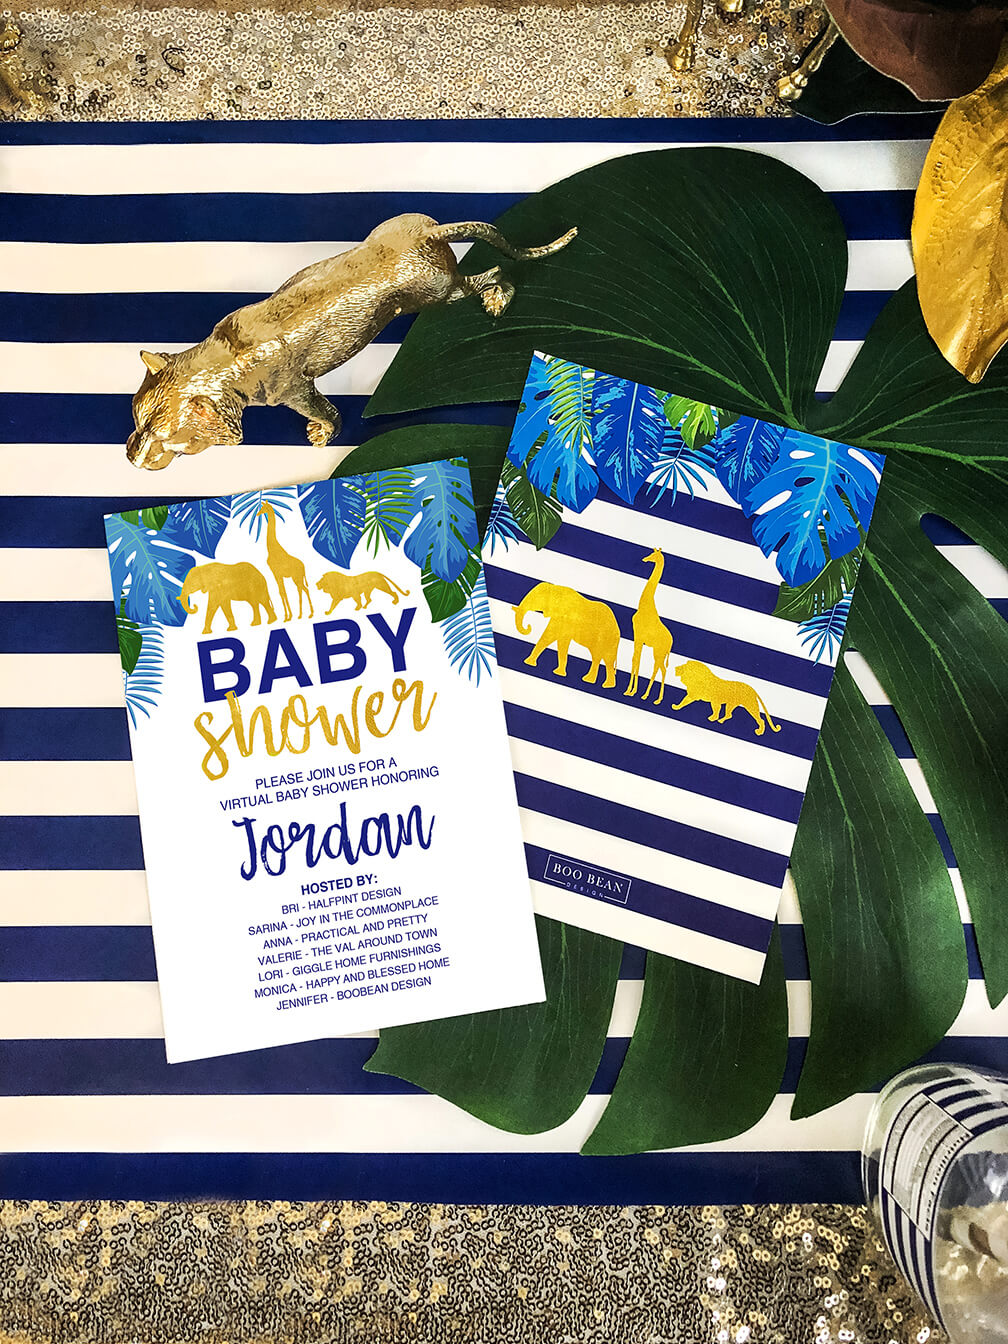 Invitation for a glam safari baby shower on striped table runner